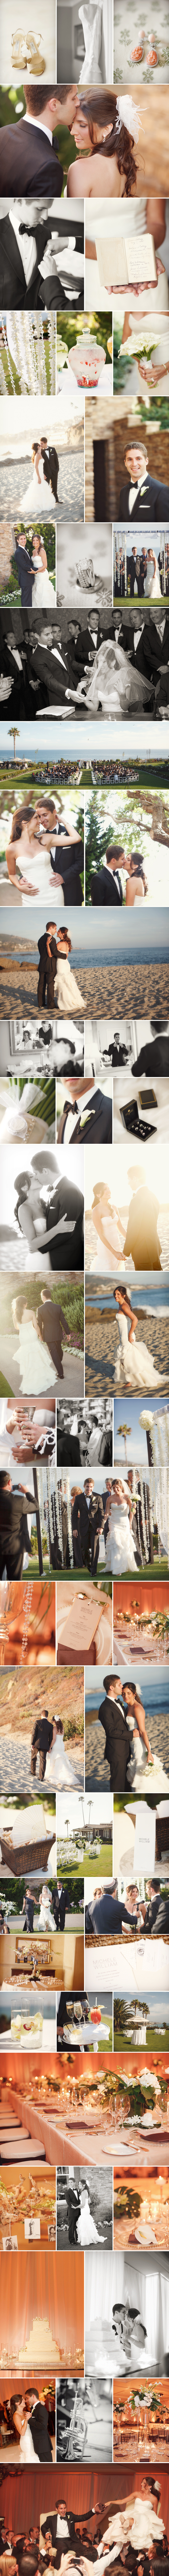 wedding photography collage from the montage in laguna beach with photographs of couple on the beach